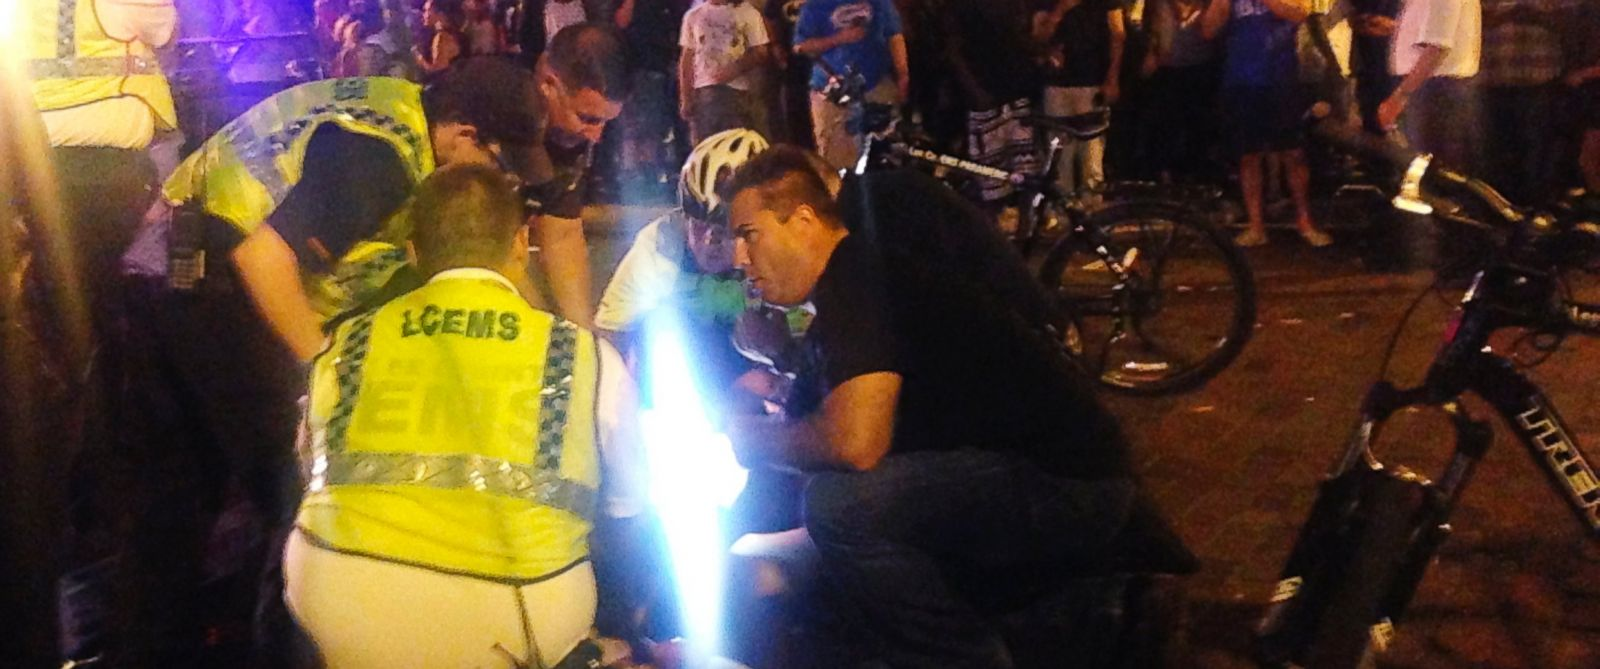 PHOTO: Emergency medical workers and police work next to a person at the scene of shooting, Oct. 17, 2015, at ZombiCon in Fort Myers, Fla.